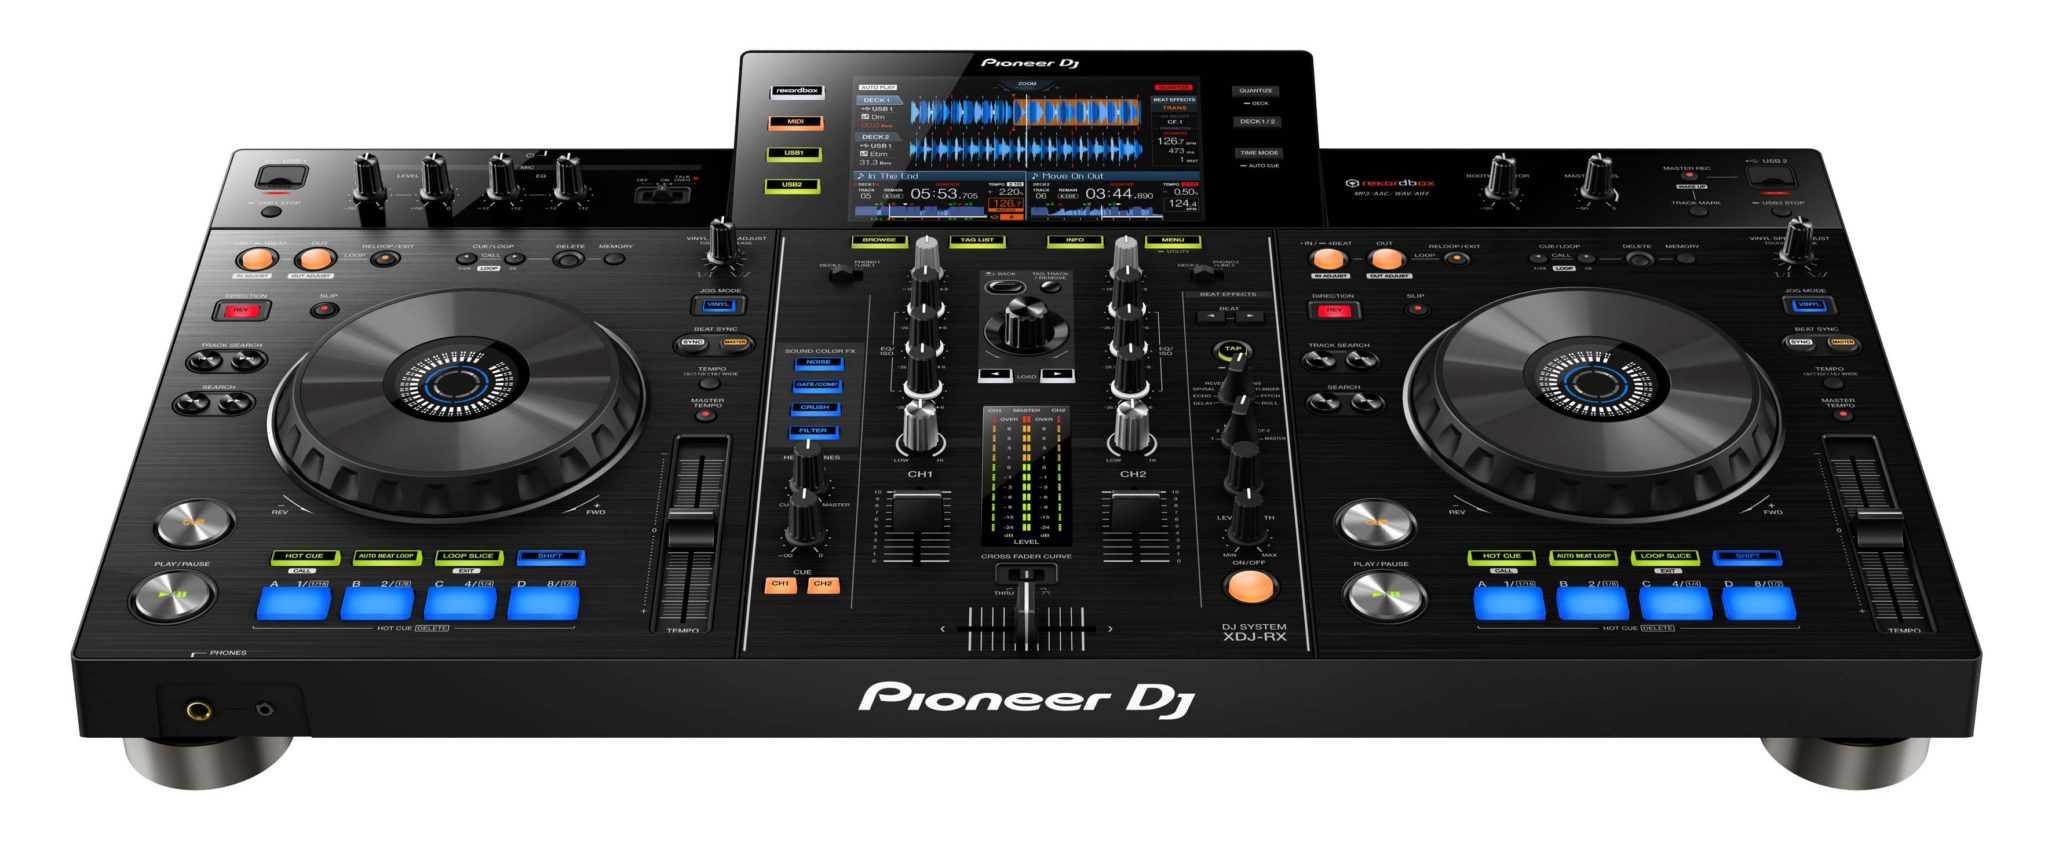 pioneer xdj rx evolution of the all in one dj system passionate dj. Black Bedroom Furniture Sets. Home Design Ideas